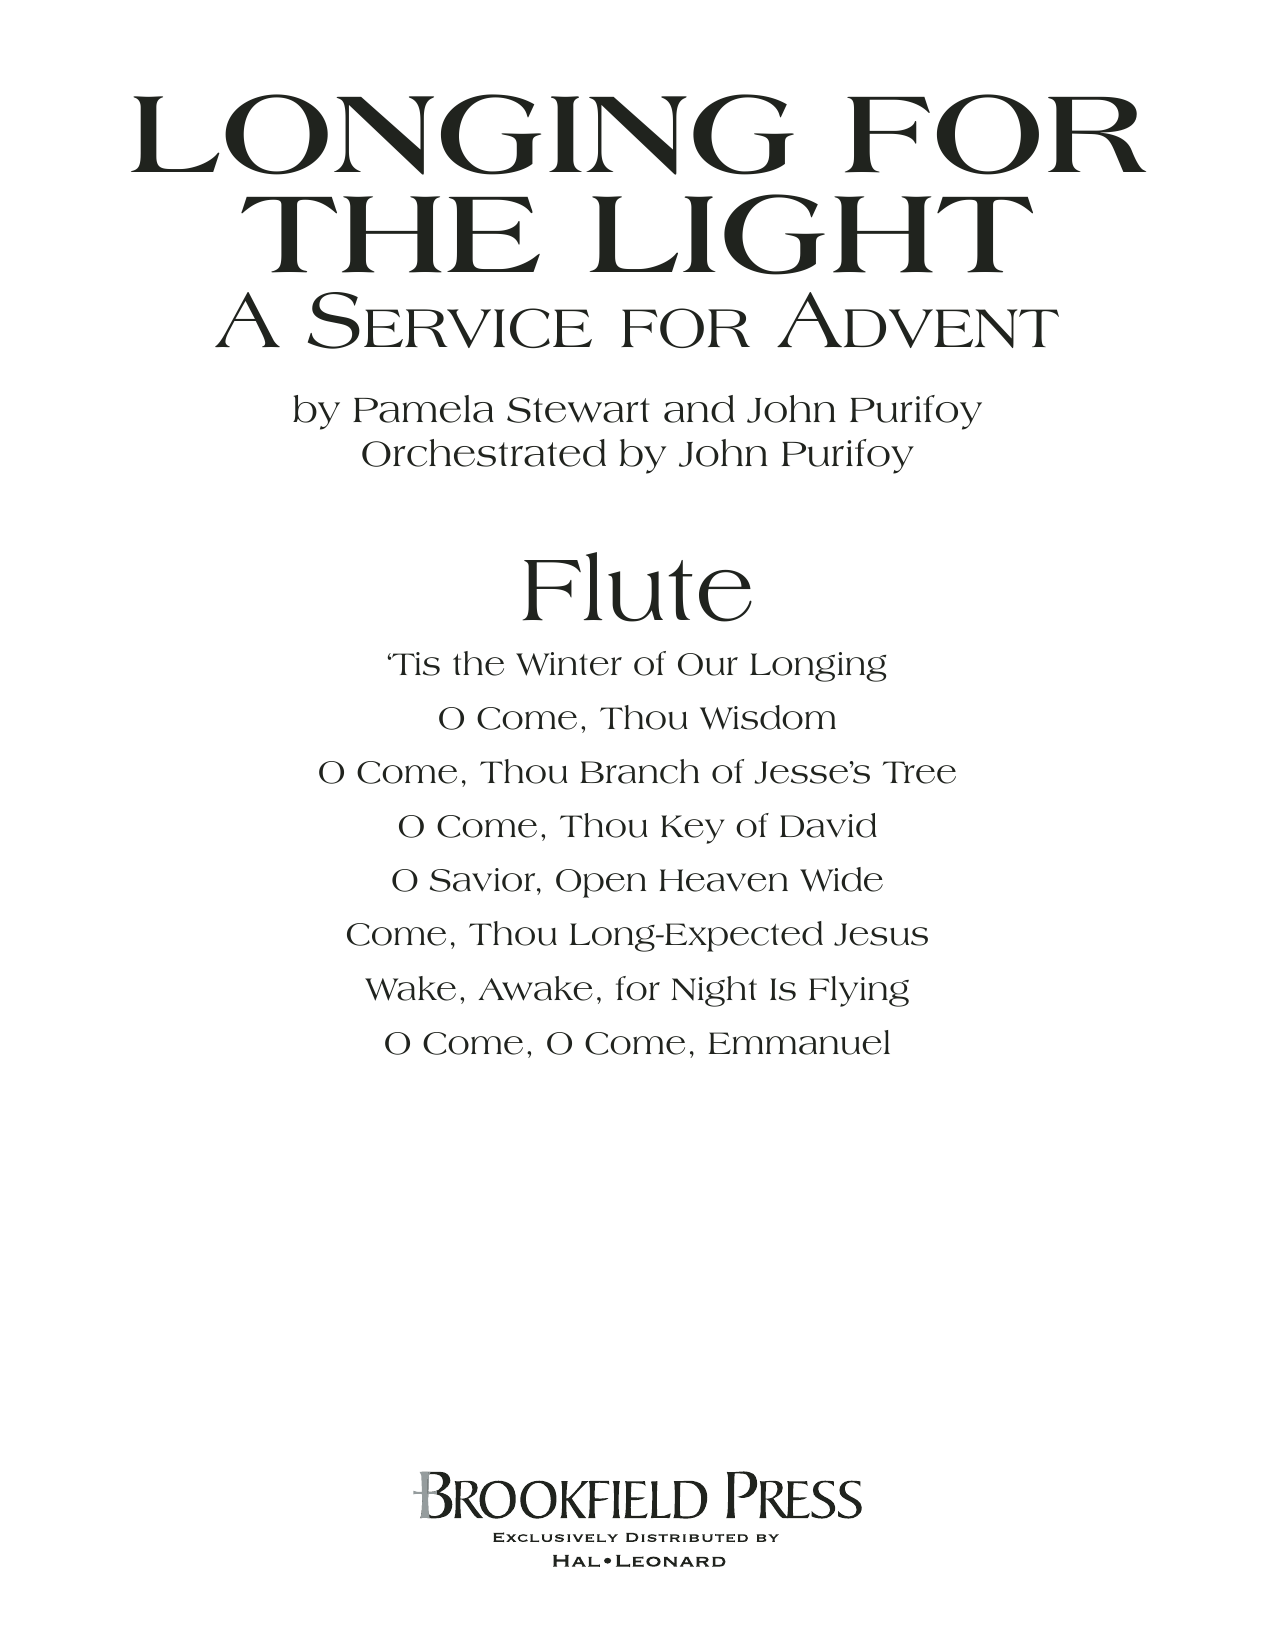 Longing For The Light (A Service For Advent) - Flute Sheet Music